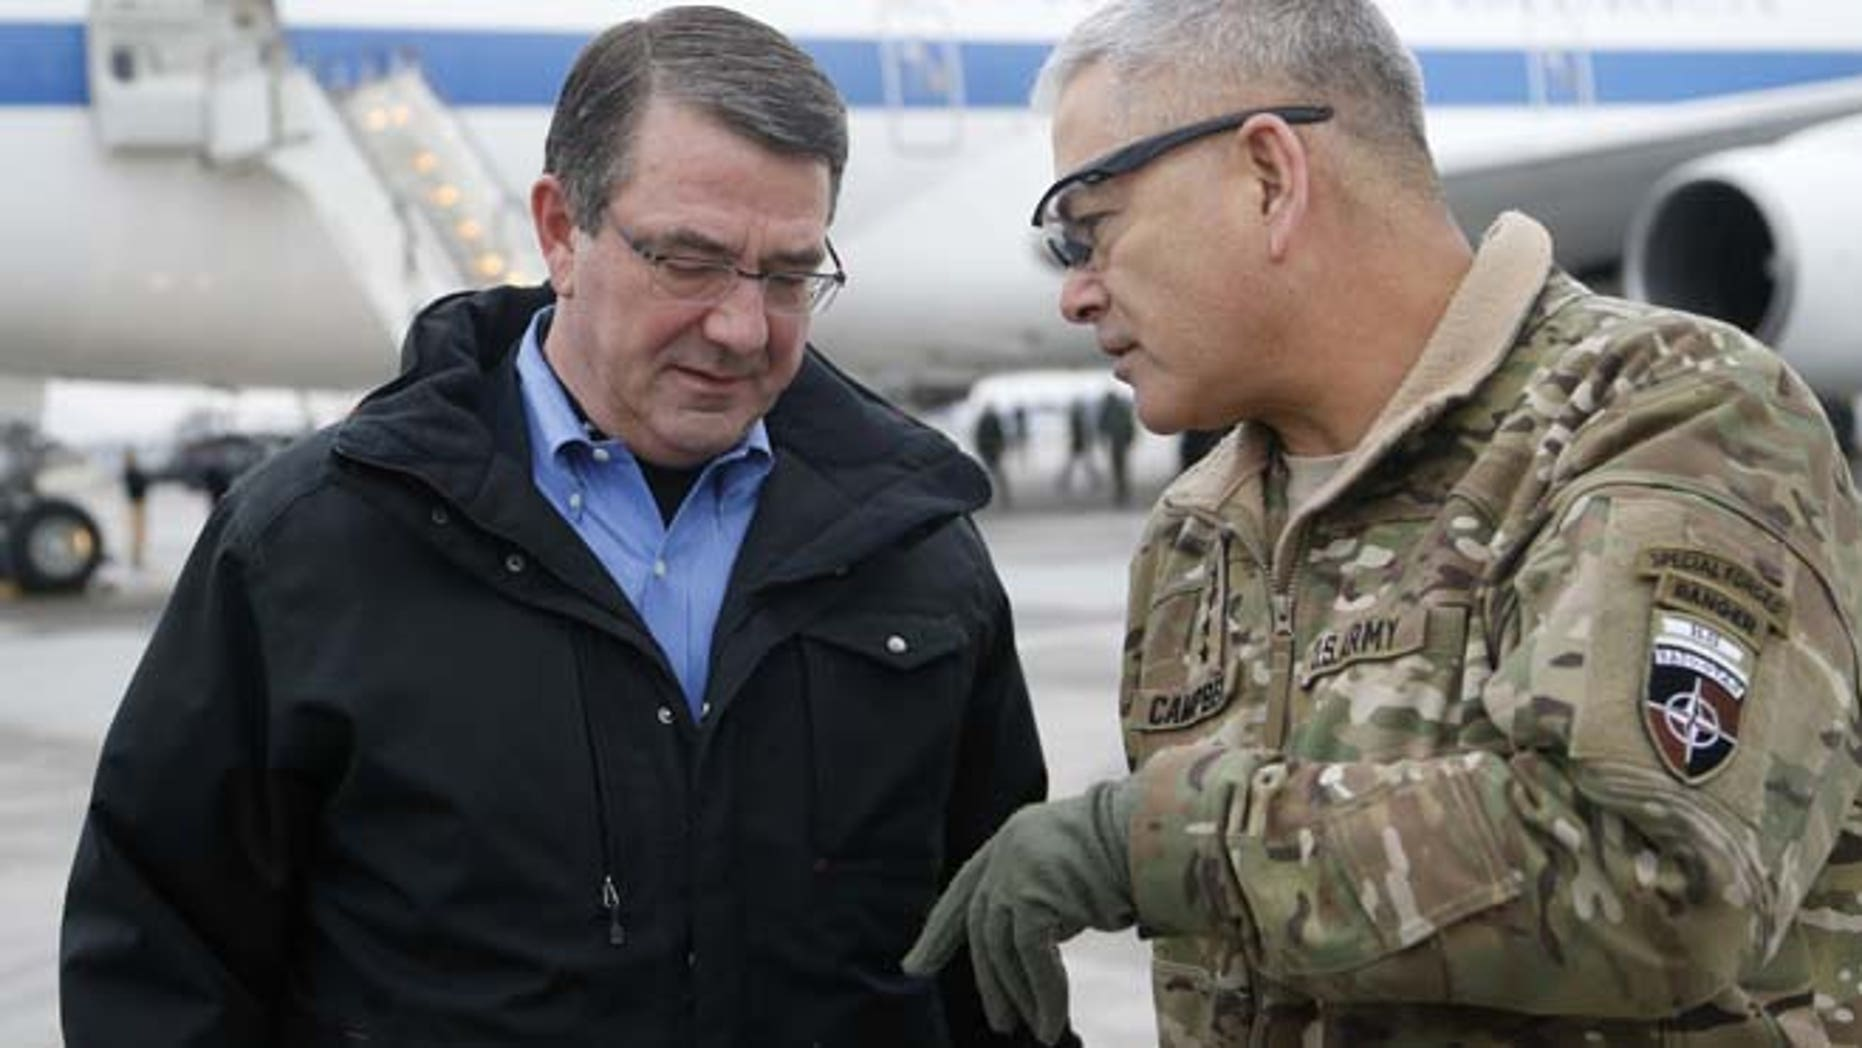 Feb. 21, 2015: In this file photo, U.S. Secretary of Defense Ash Carter, left, walks with U.S. Army Gen. John Campbell upon arrival at Hamid Karzai International Airport in Kabul, Afghanistan. (AP)